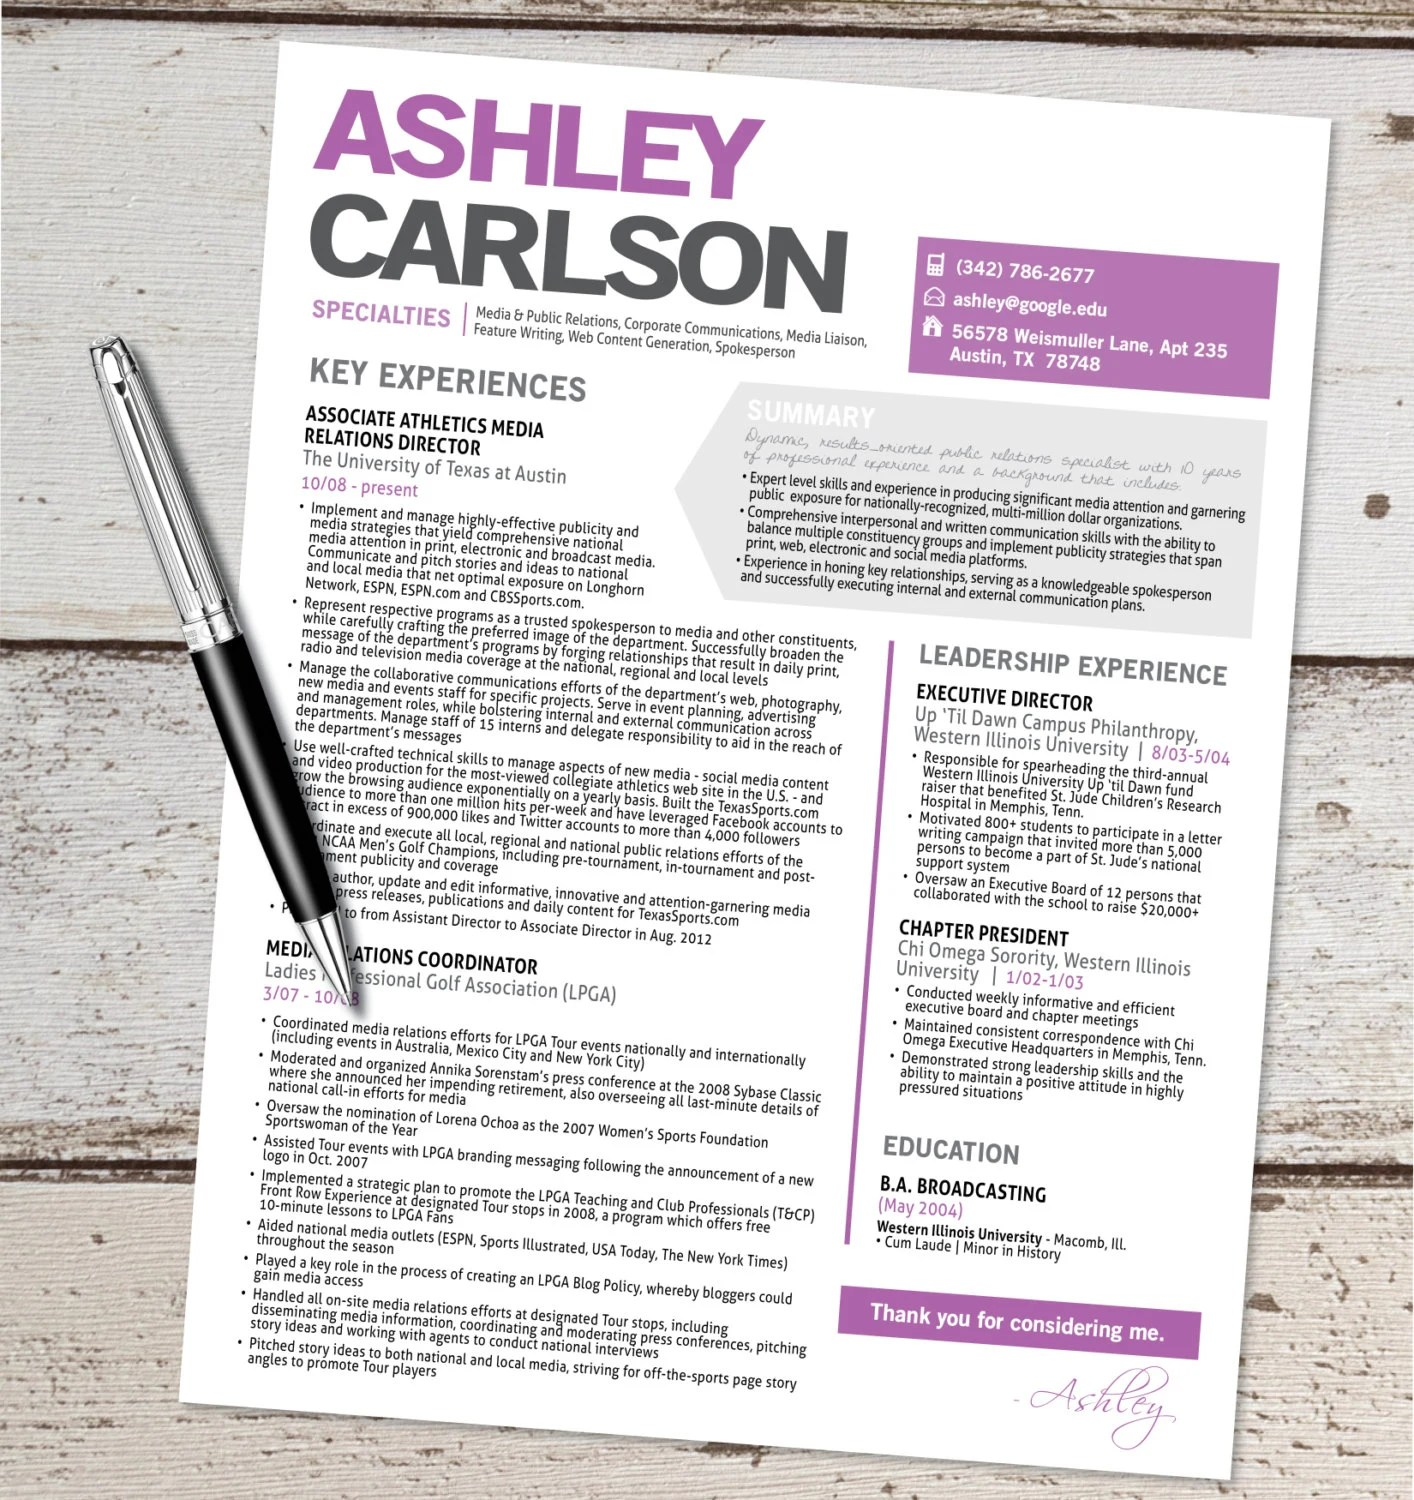 examples of updated resume profesional resume for job examples of updated resume how to update your resume in 5 steps resume tips the ashley